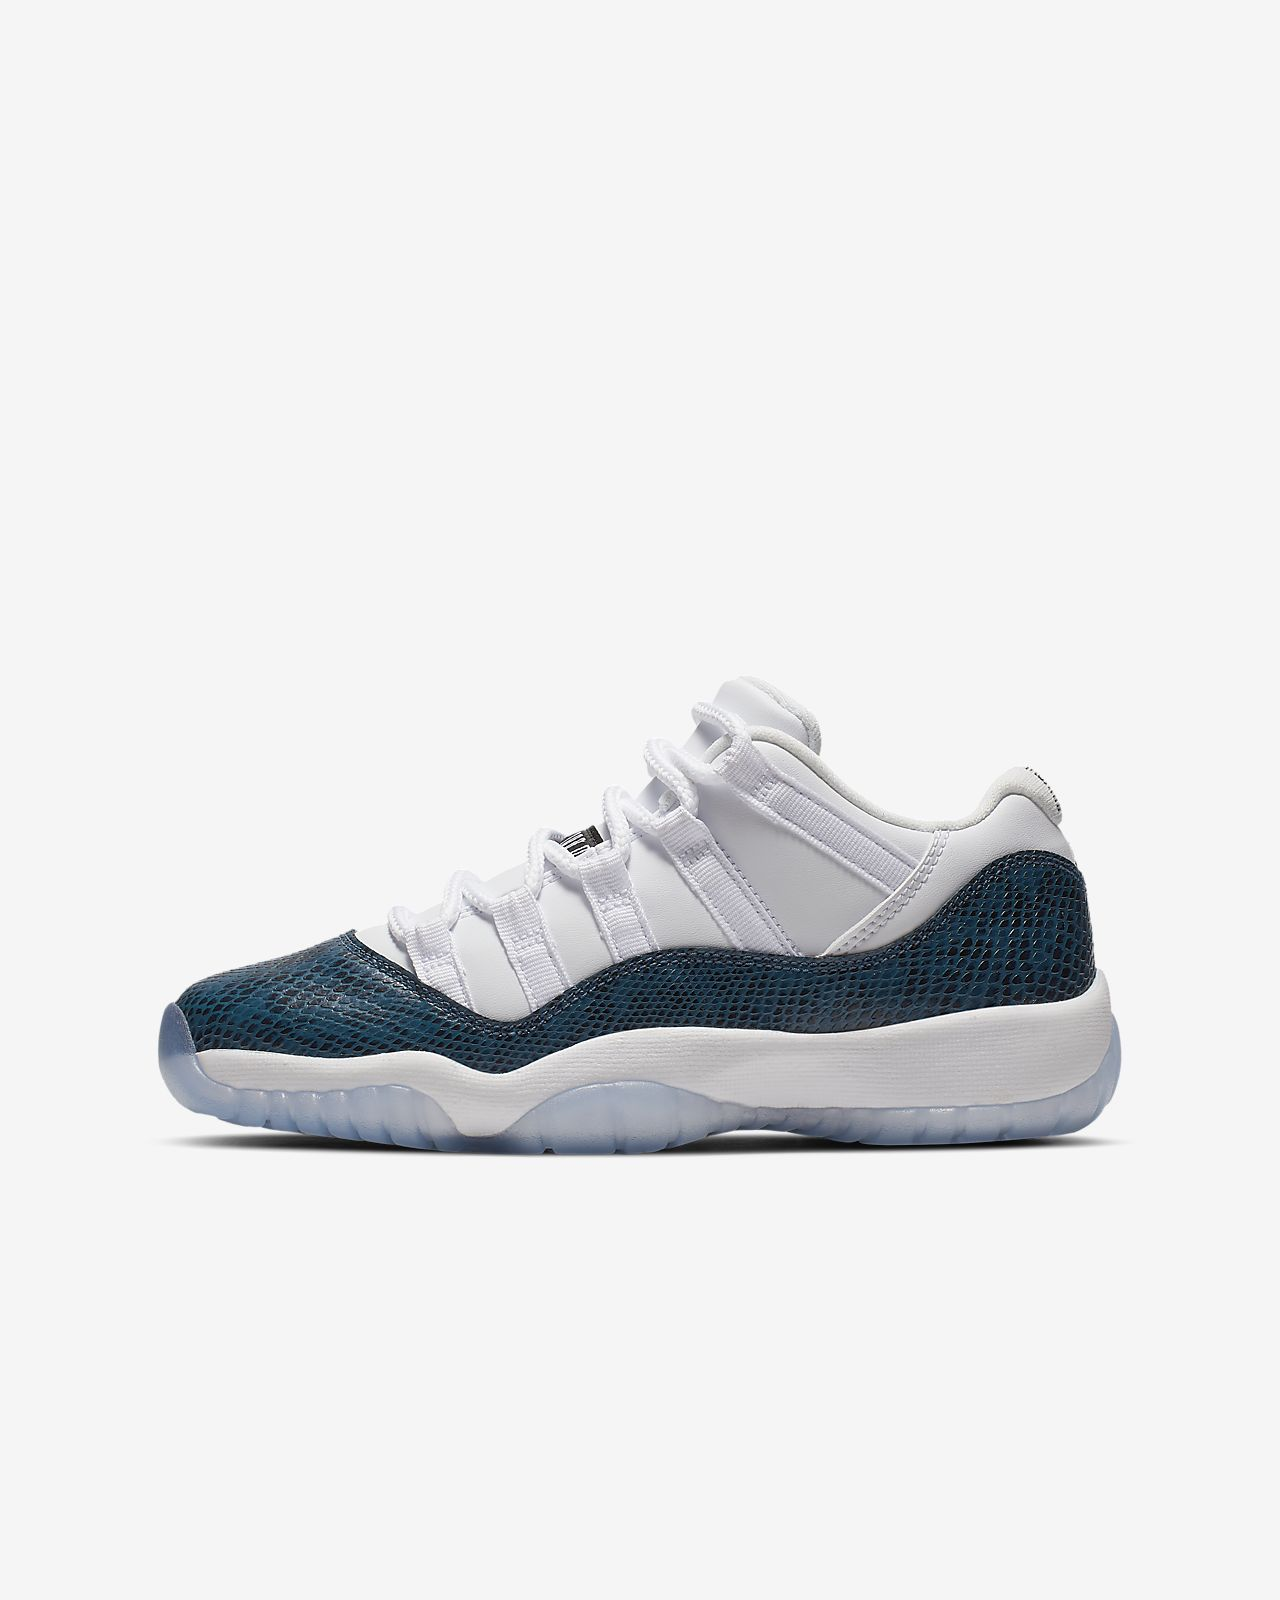 28312d8b861 Air Jordan 11 Retro Low LE Big Kids' Shoe. Nike.com